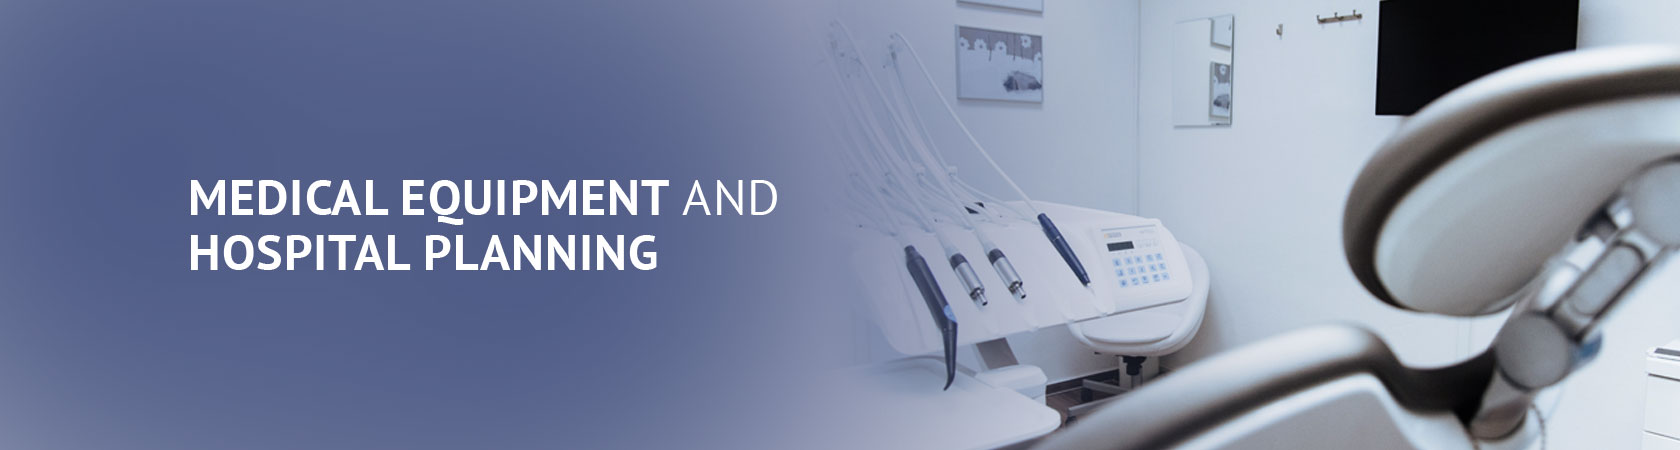 MEDICAL EQUIPMENT AND HOSPITAL PLANNING